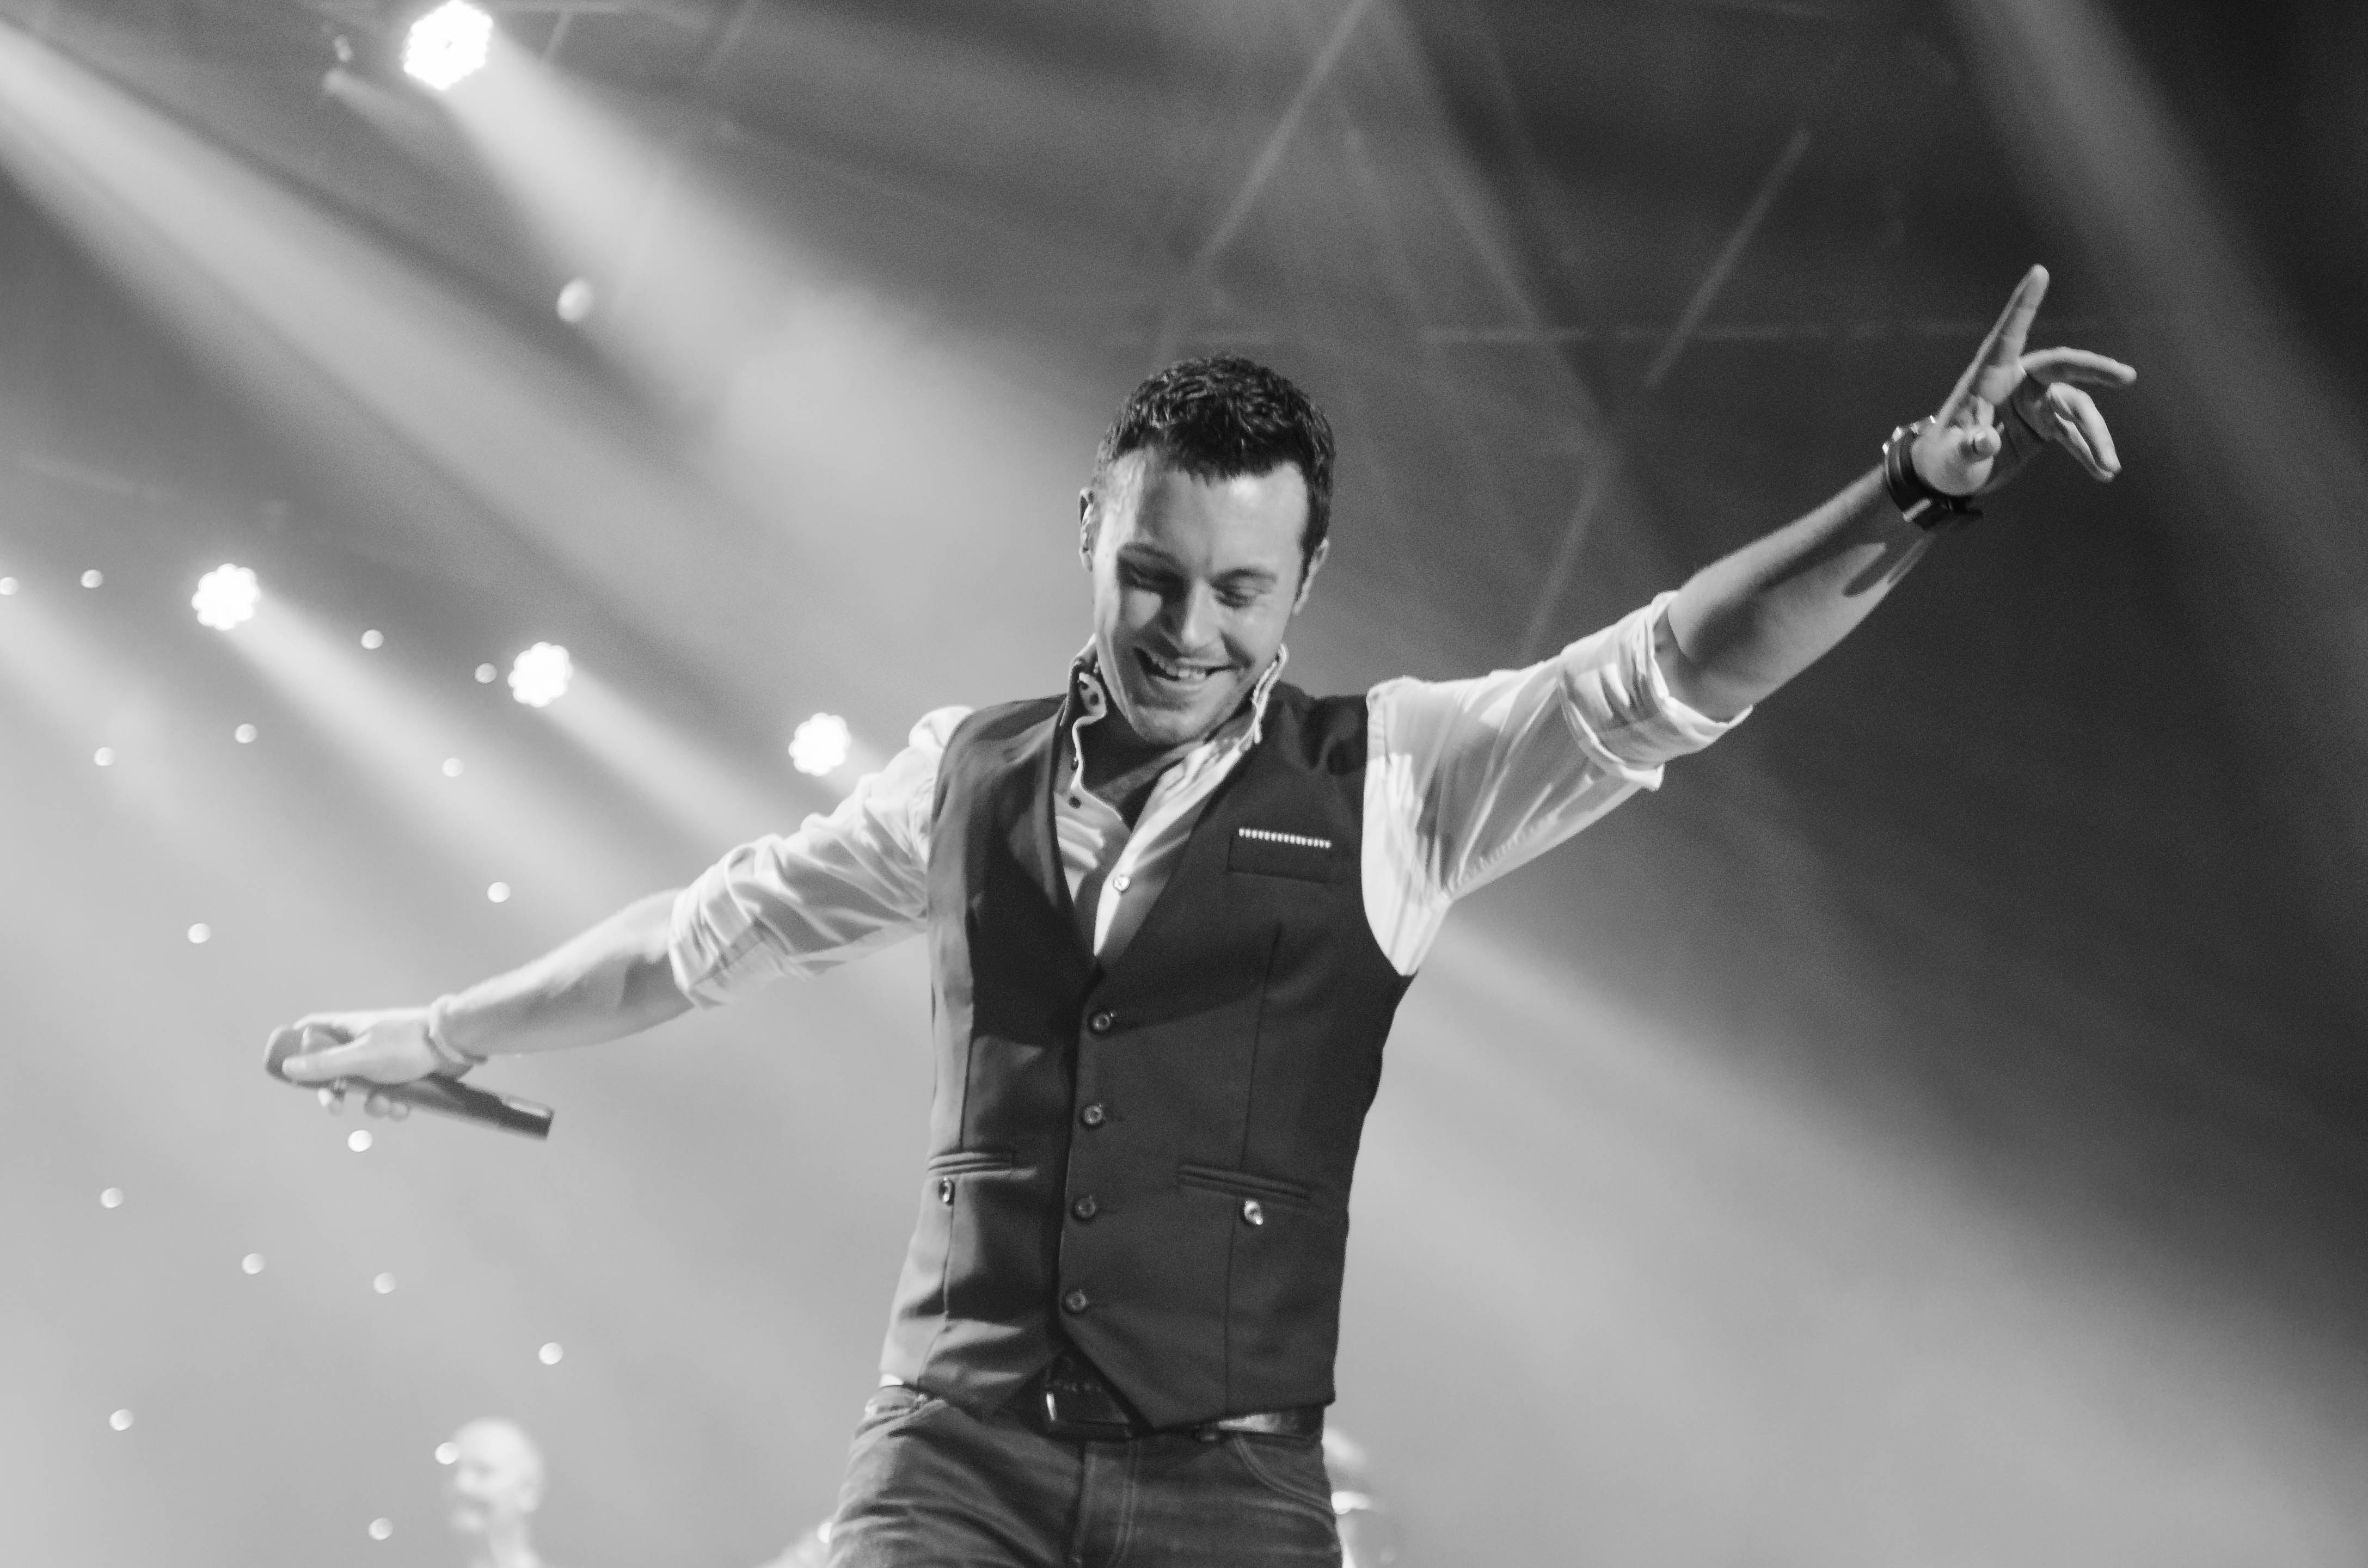 nathan-carter-at-the-marquee-cork-by-sean-smyth-15-6-14-15-of-55